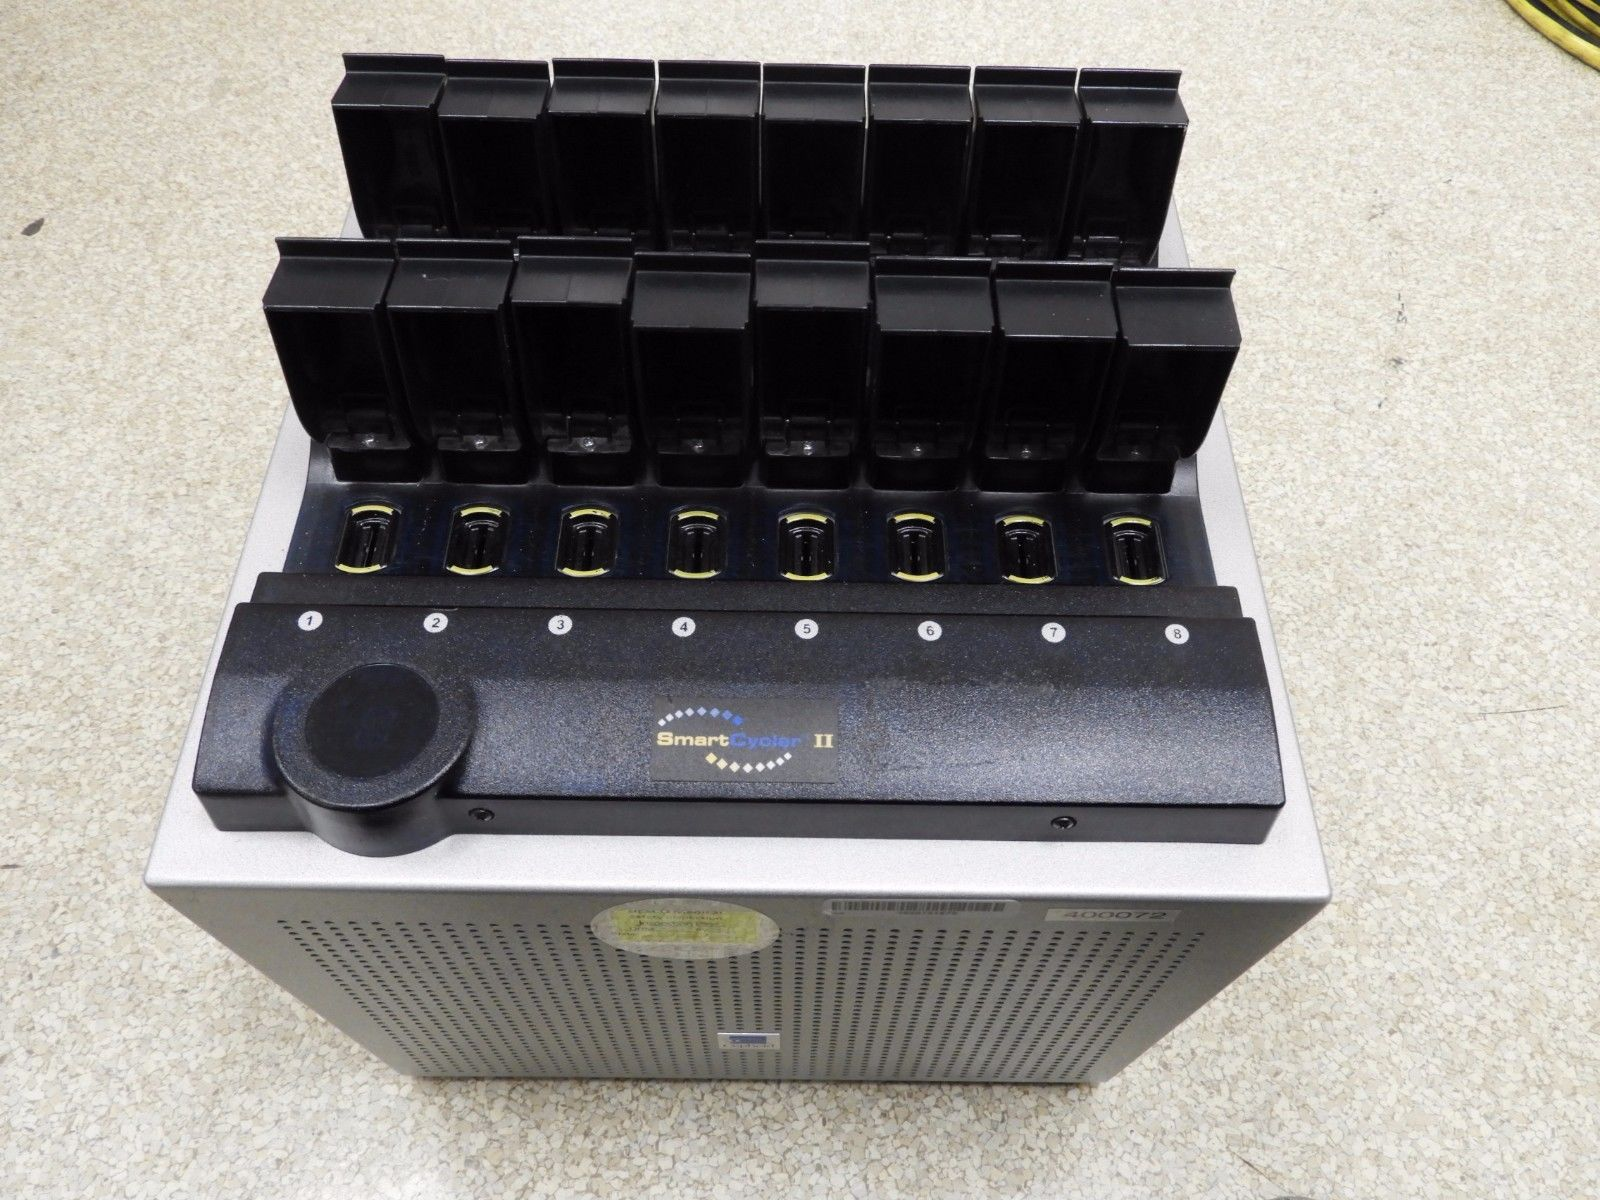 Cepheid SmartCycler II Automated Real Time PCR Block